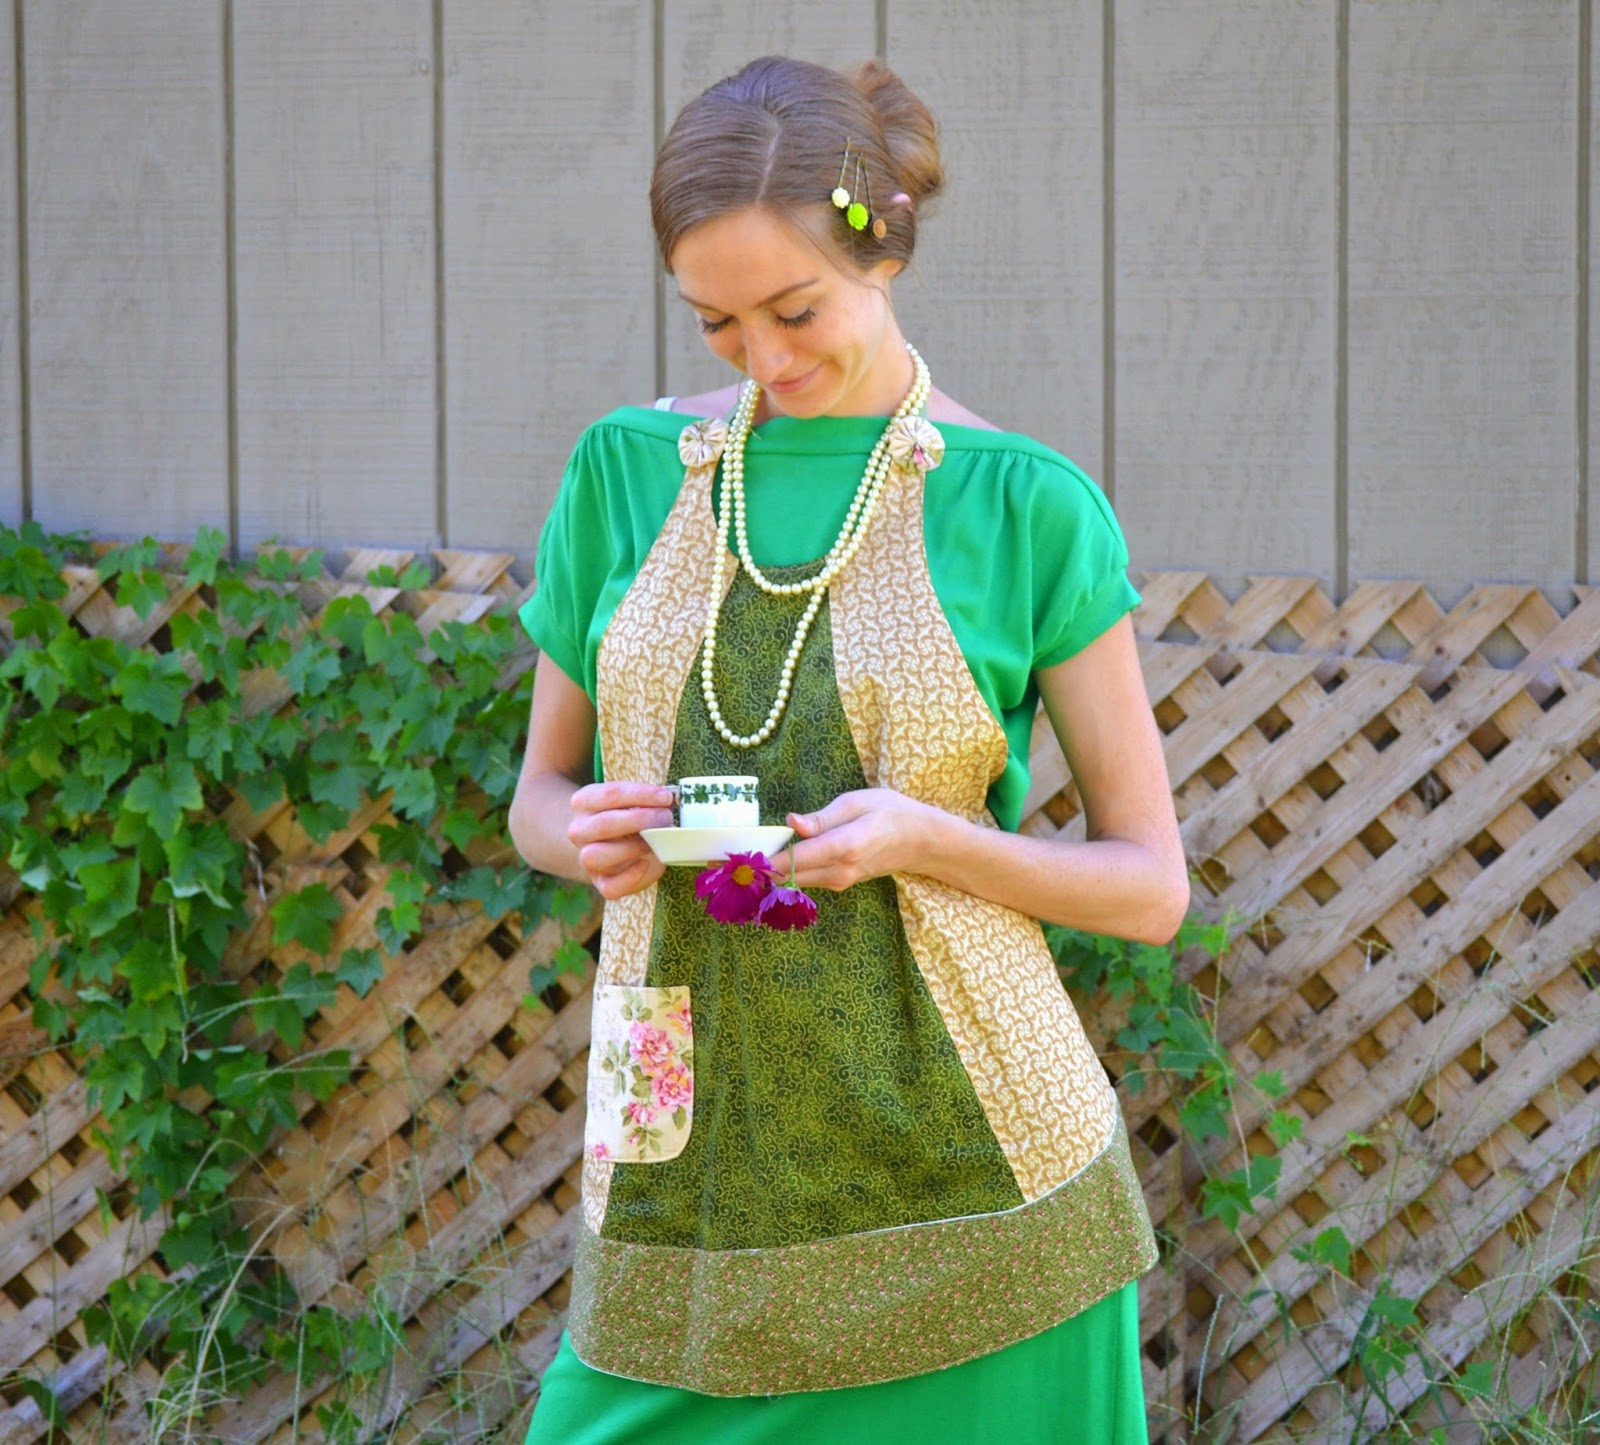 https://www.etsy.com/listing/205167987/celtic-garden-ivy-vine-apron-green-and?ref=shop_home_active_1&ga_search_query=apron